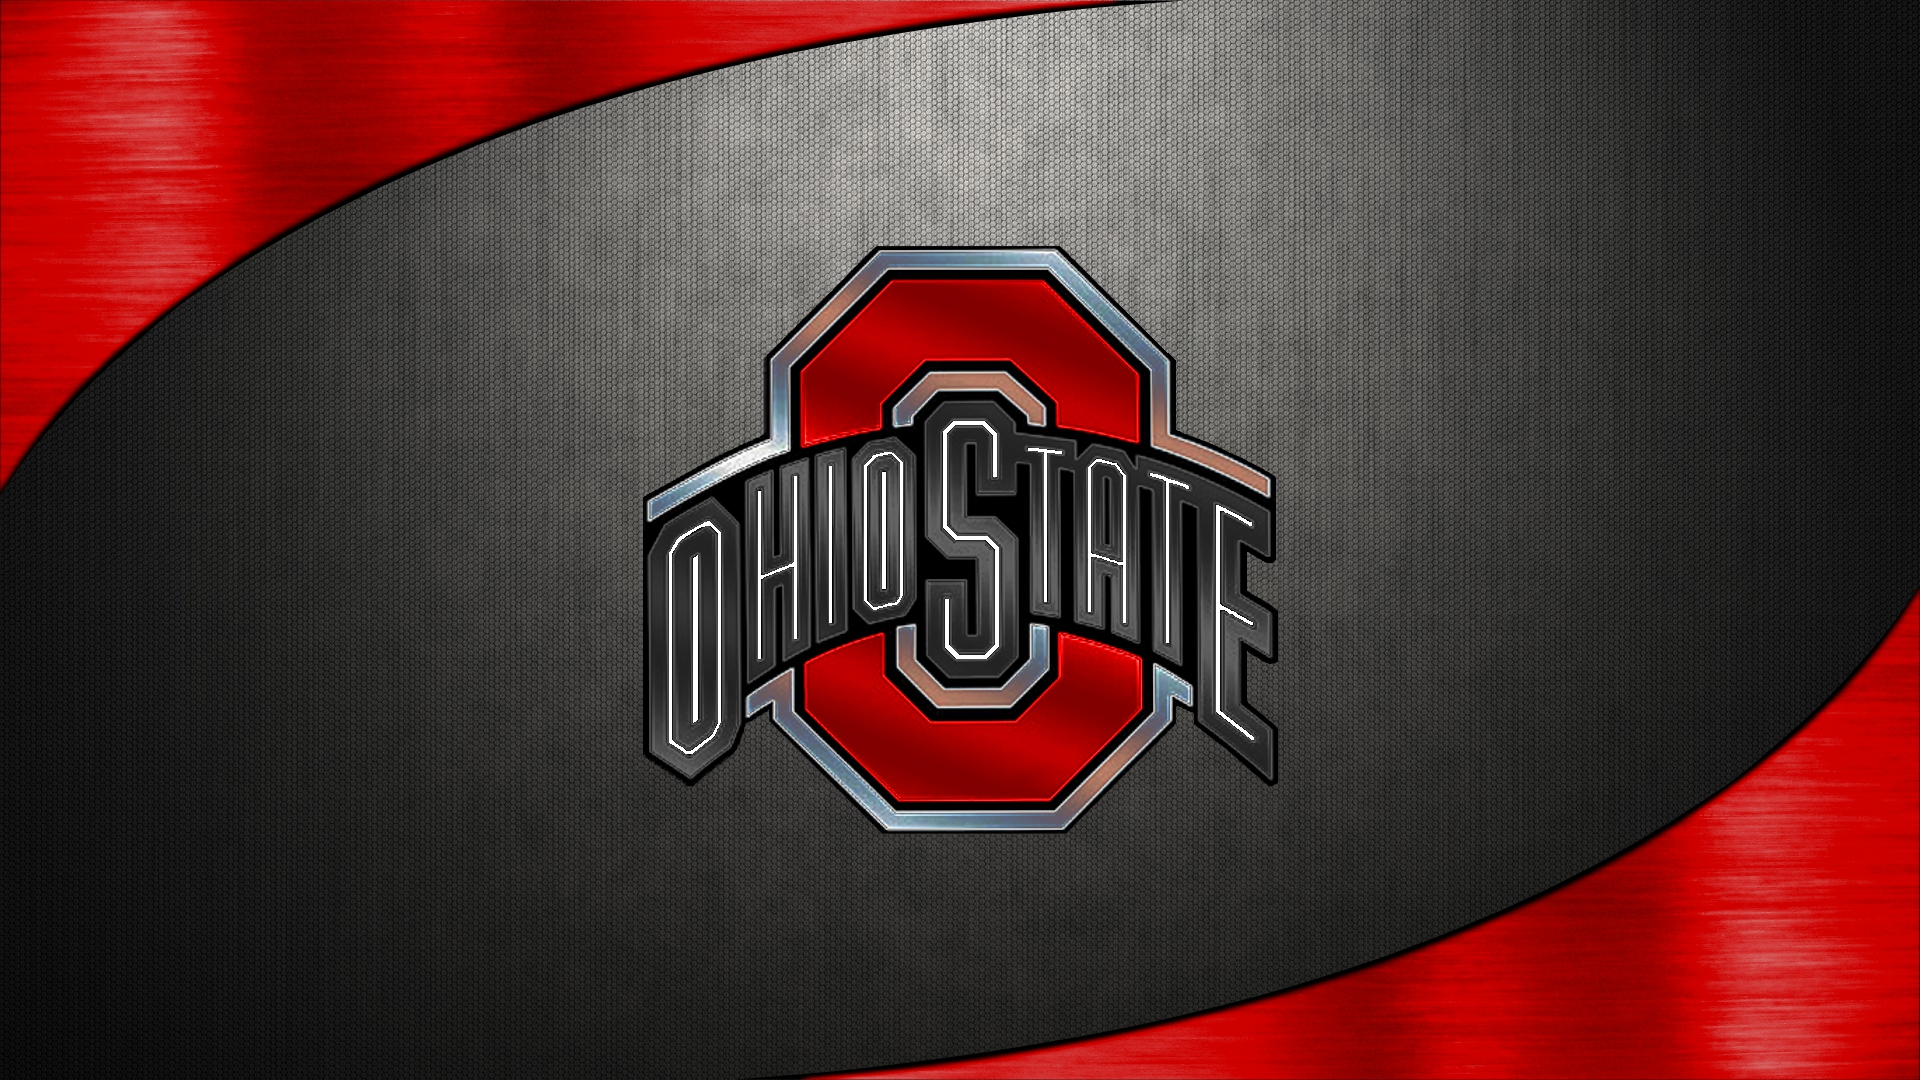 Ohio State Logo Wallpaper: Ohio State Football Images OSU Wallpaper 447 HD Wallpaper